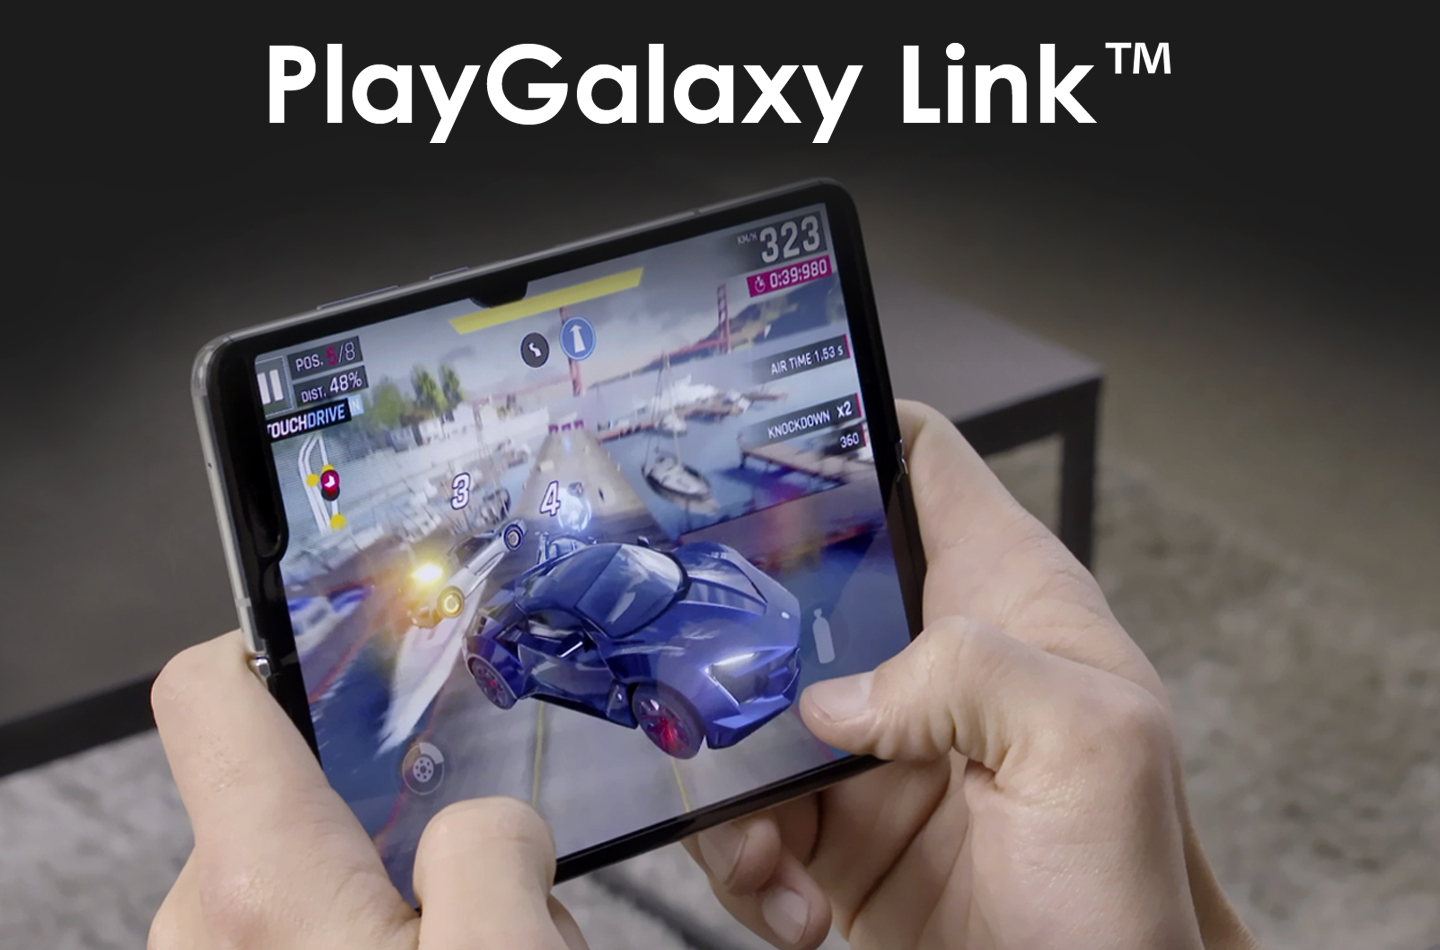 samsung playgalaxy link